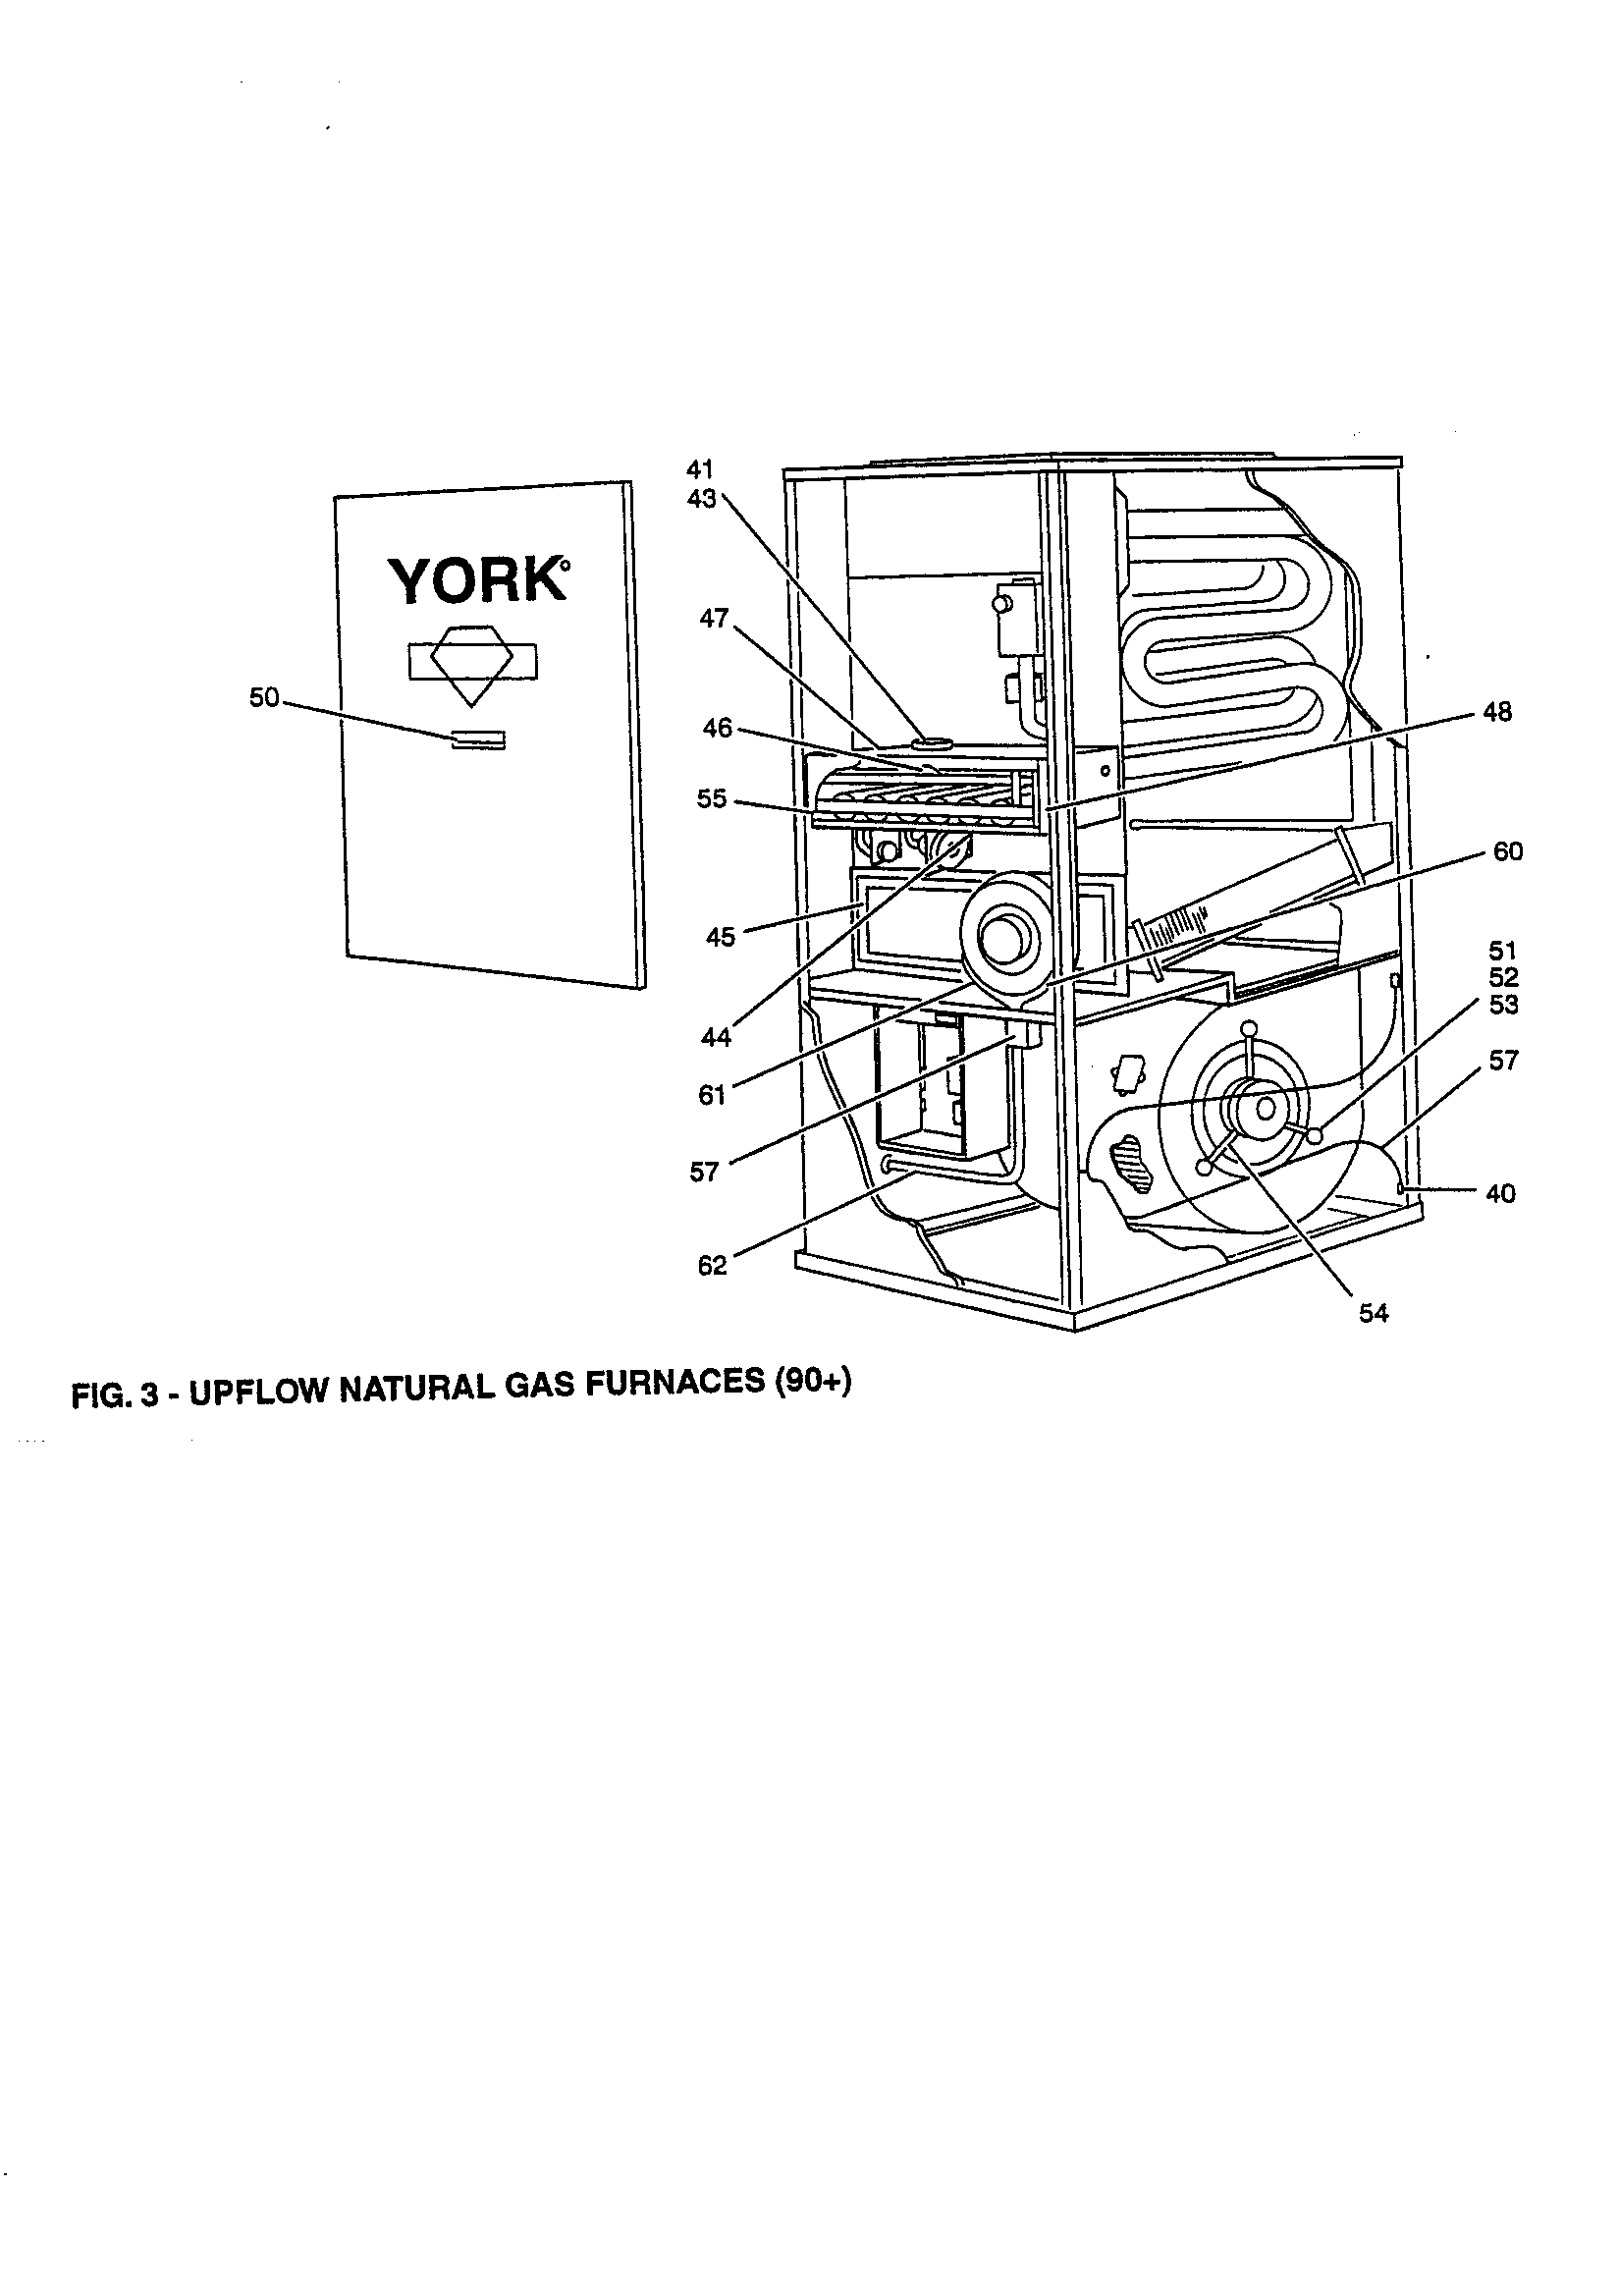 FIG. 3 Diagram & Parts List for Model p3urc20n09501c York